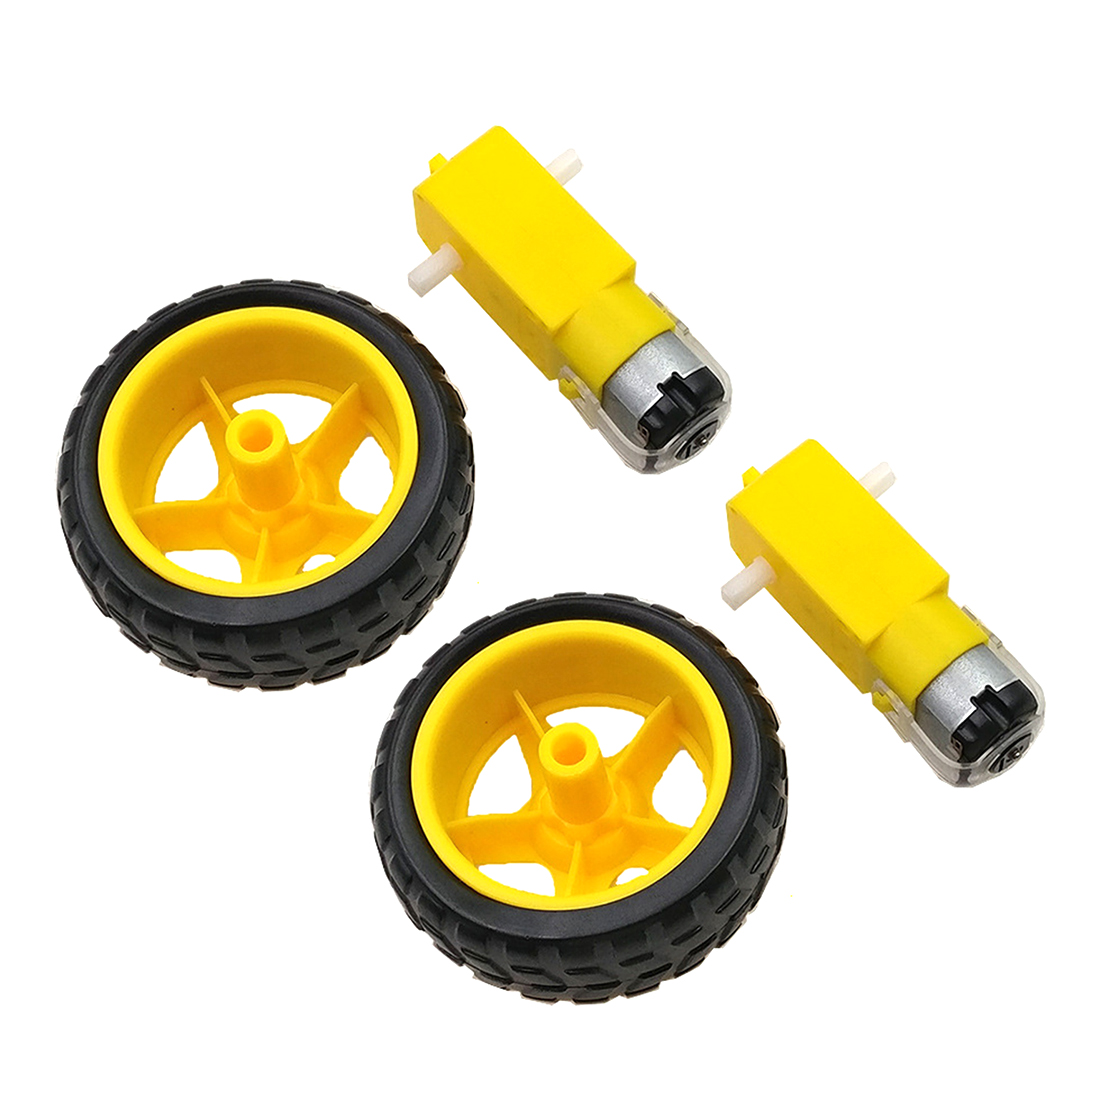 2Pcs Small Smart Car Tyres Wheel Robot Chassis Kit With DC Speed Reduction Motor Programmable Toy Part For Kids